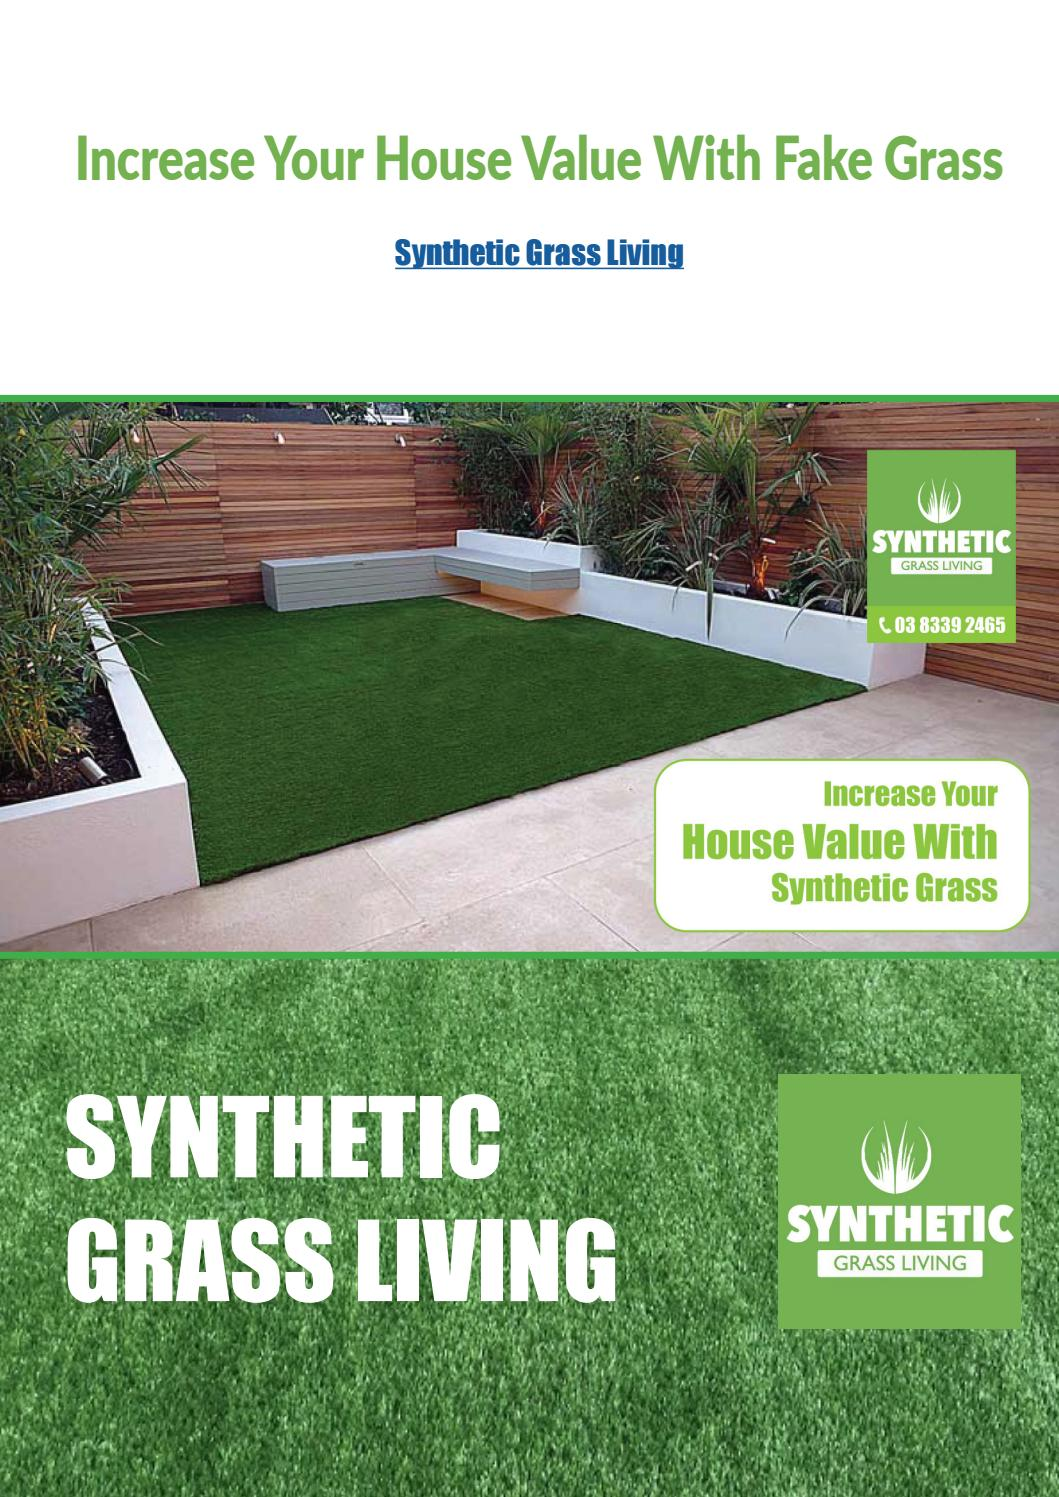 Increase Your House Value With Synthetic Grass By Travis